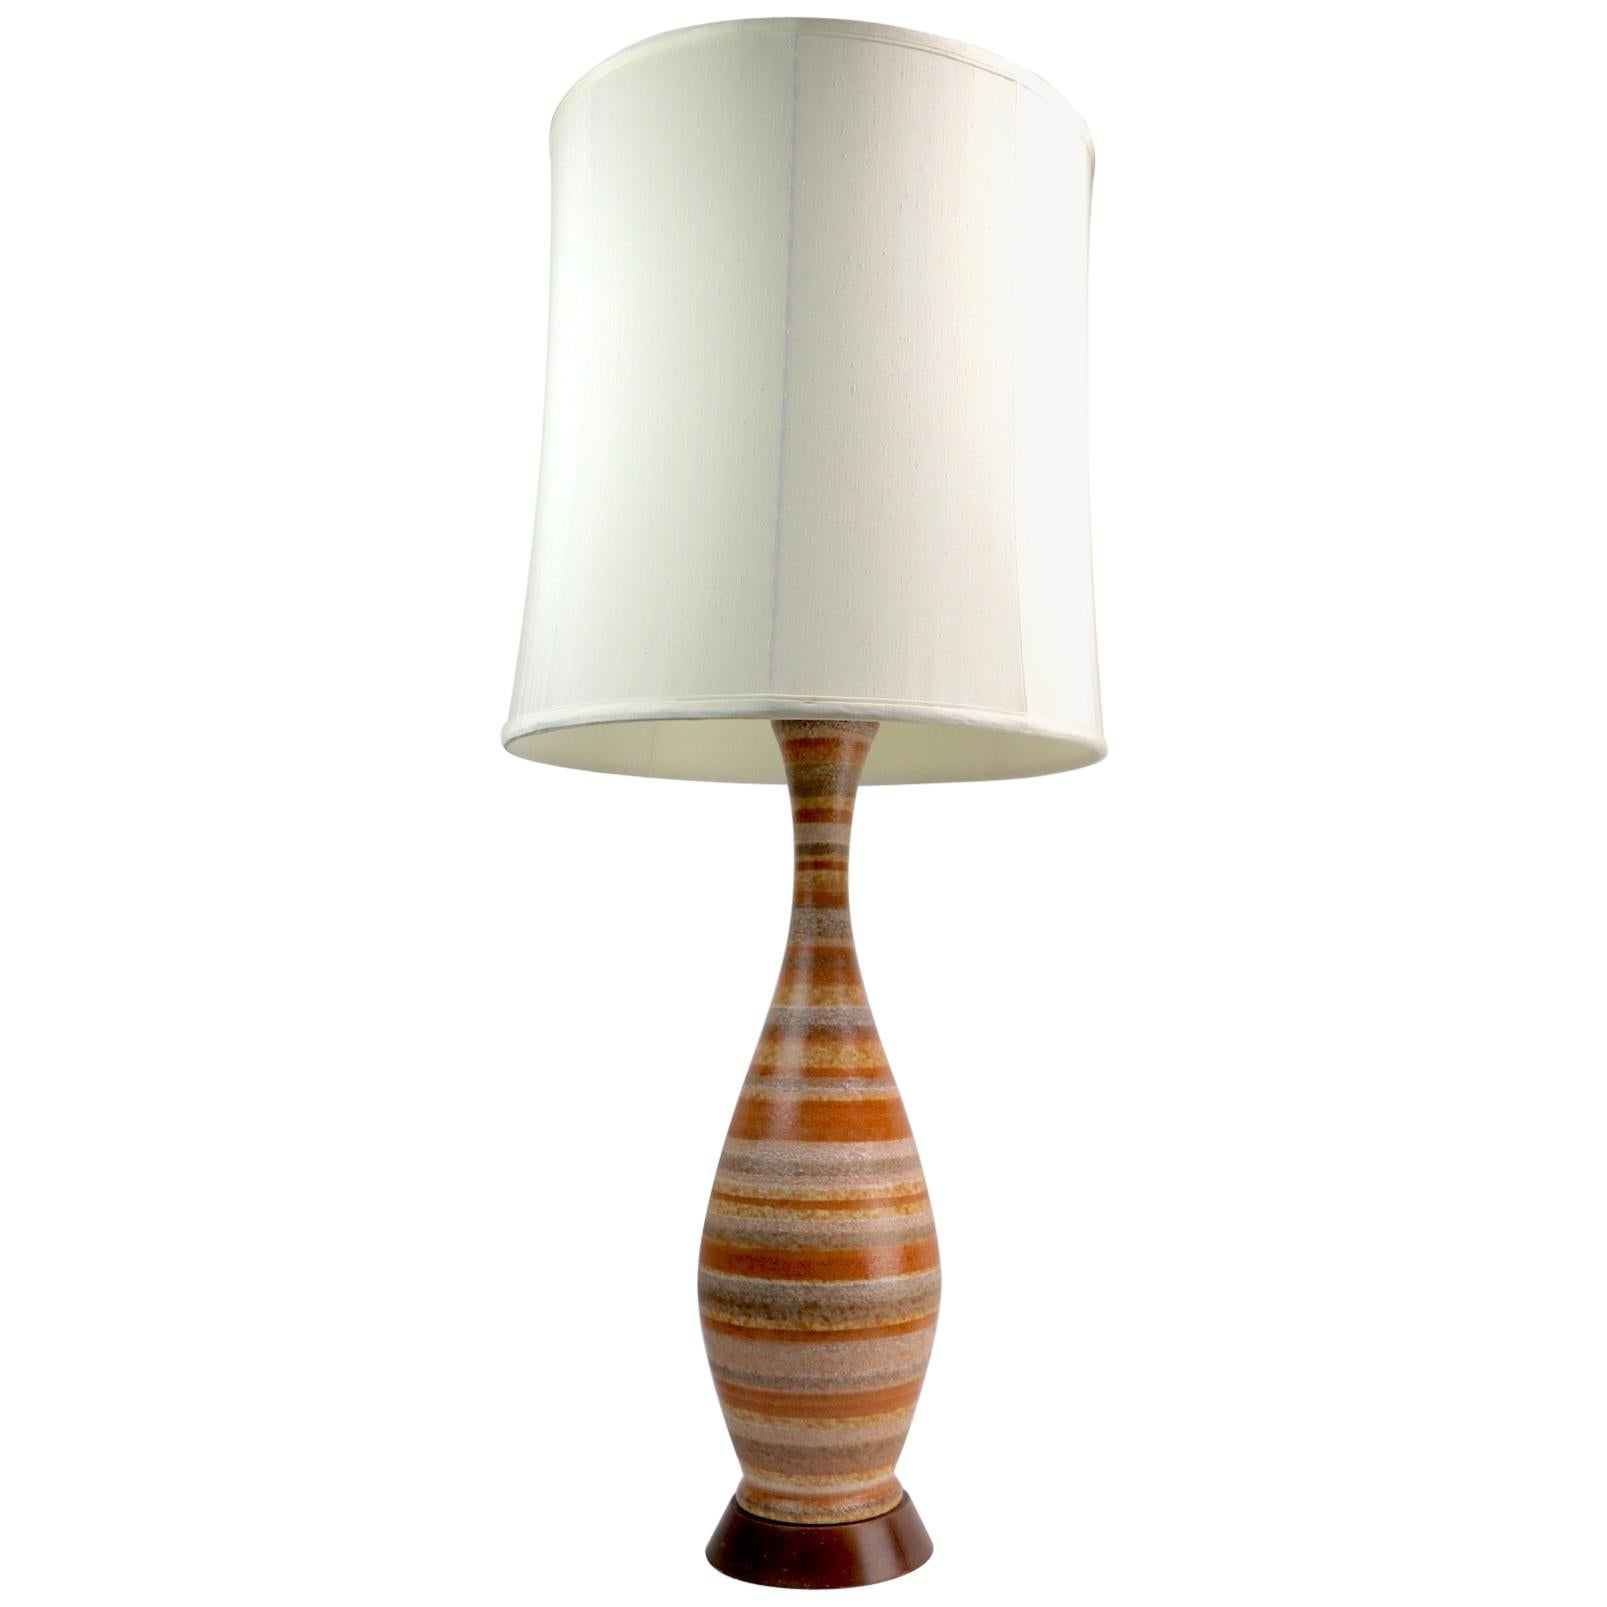 Mid-Century Modern Ceramic Table Lamp with Glazed Stripped Body